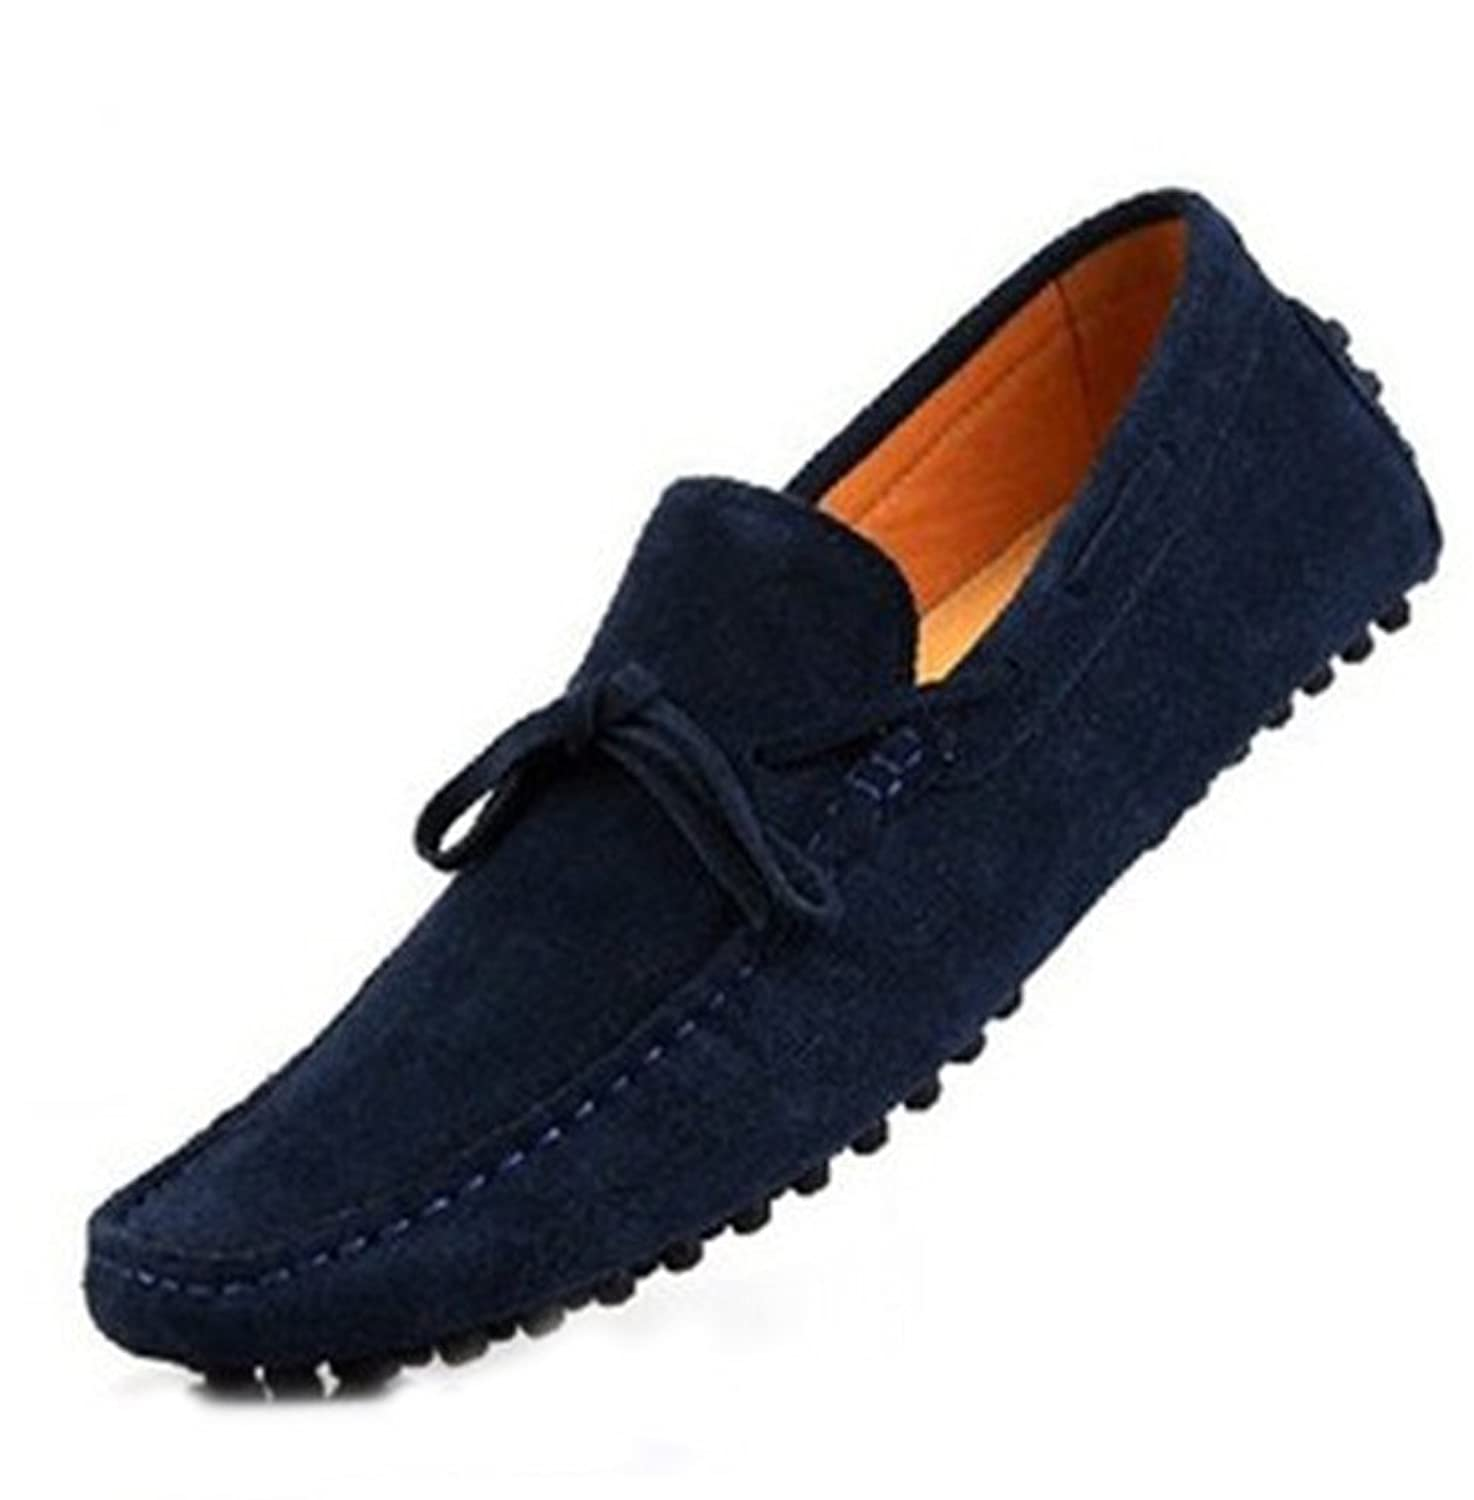 698dab4b14f hot sale 2017 HAPPYSHOP(TM) New Mens Loafers Shoes Casual Suede Comfort  Slip-on Tassel Loafer Driving Shoes EUR Size 39-45 (EUR 39